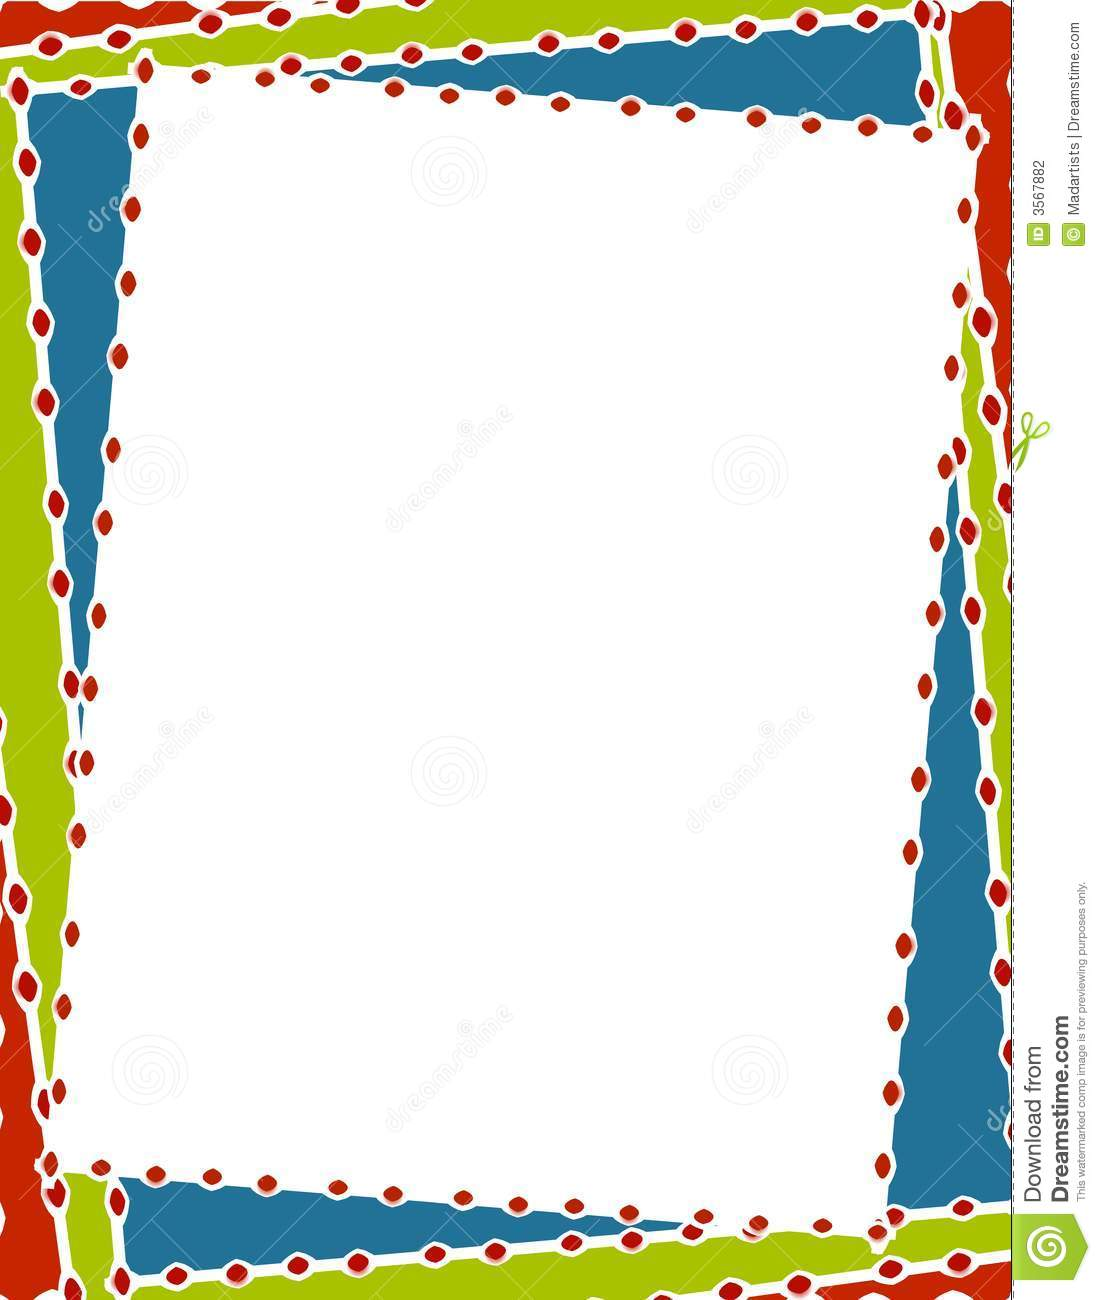 Decorative Page Borders And Frames Clipart And Images.